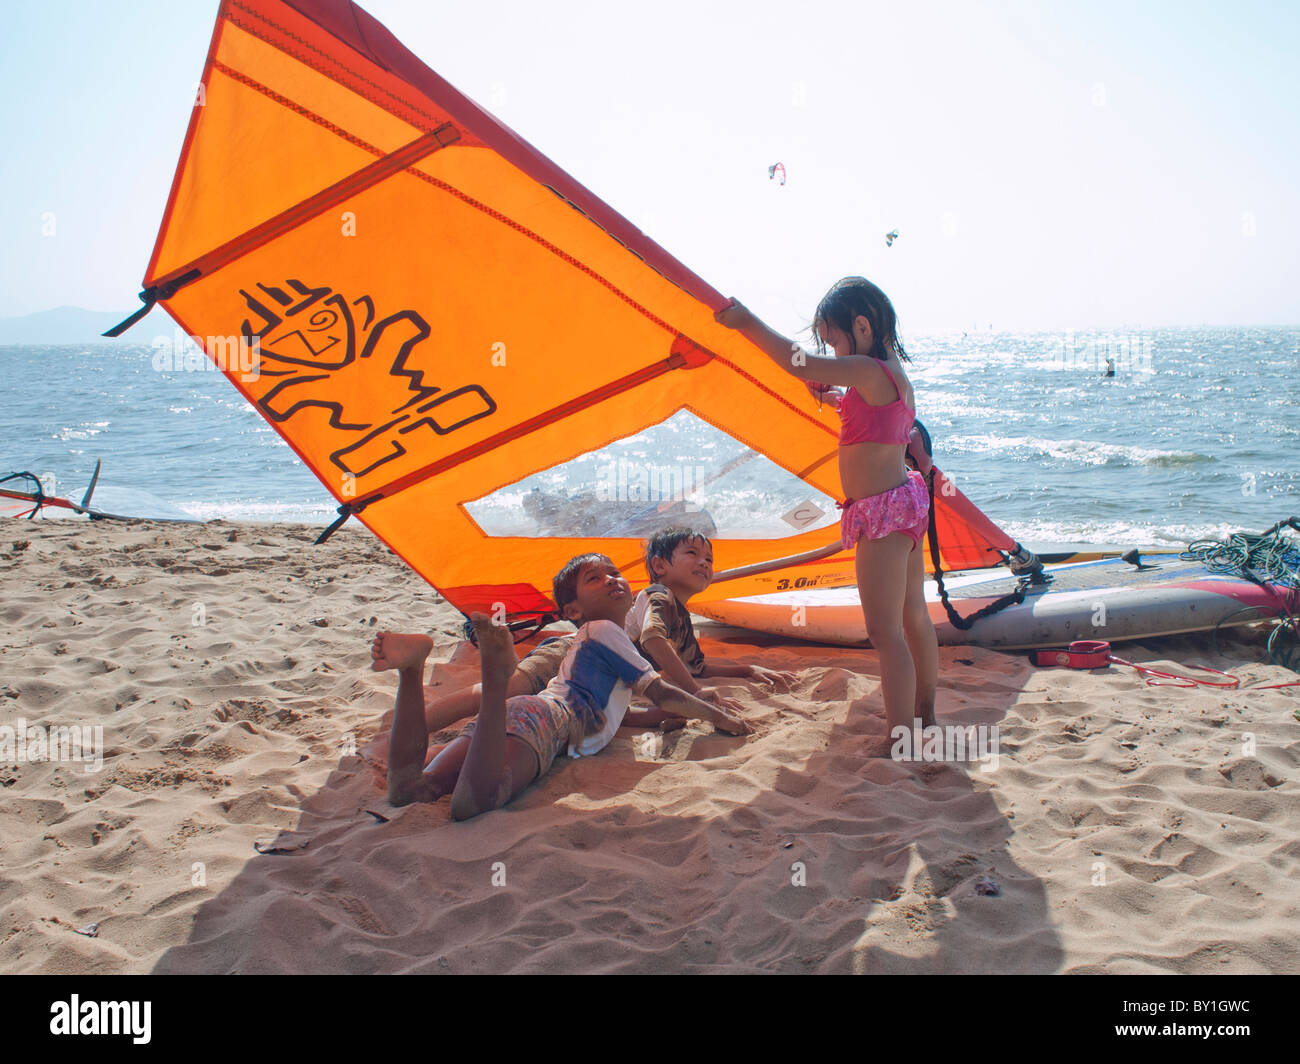 A kids playing hide and seek on the beach - Stock Image